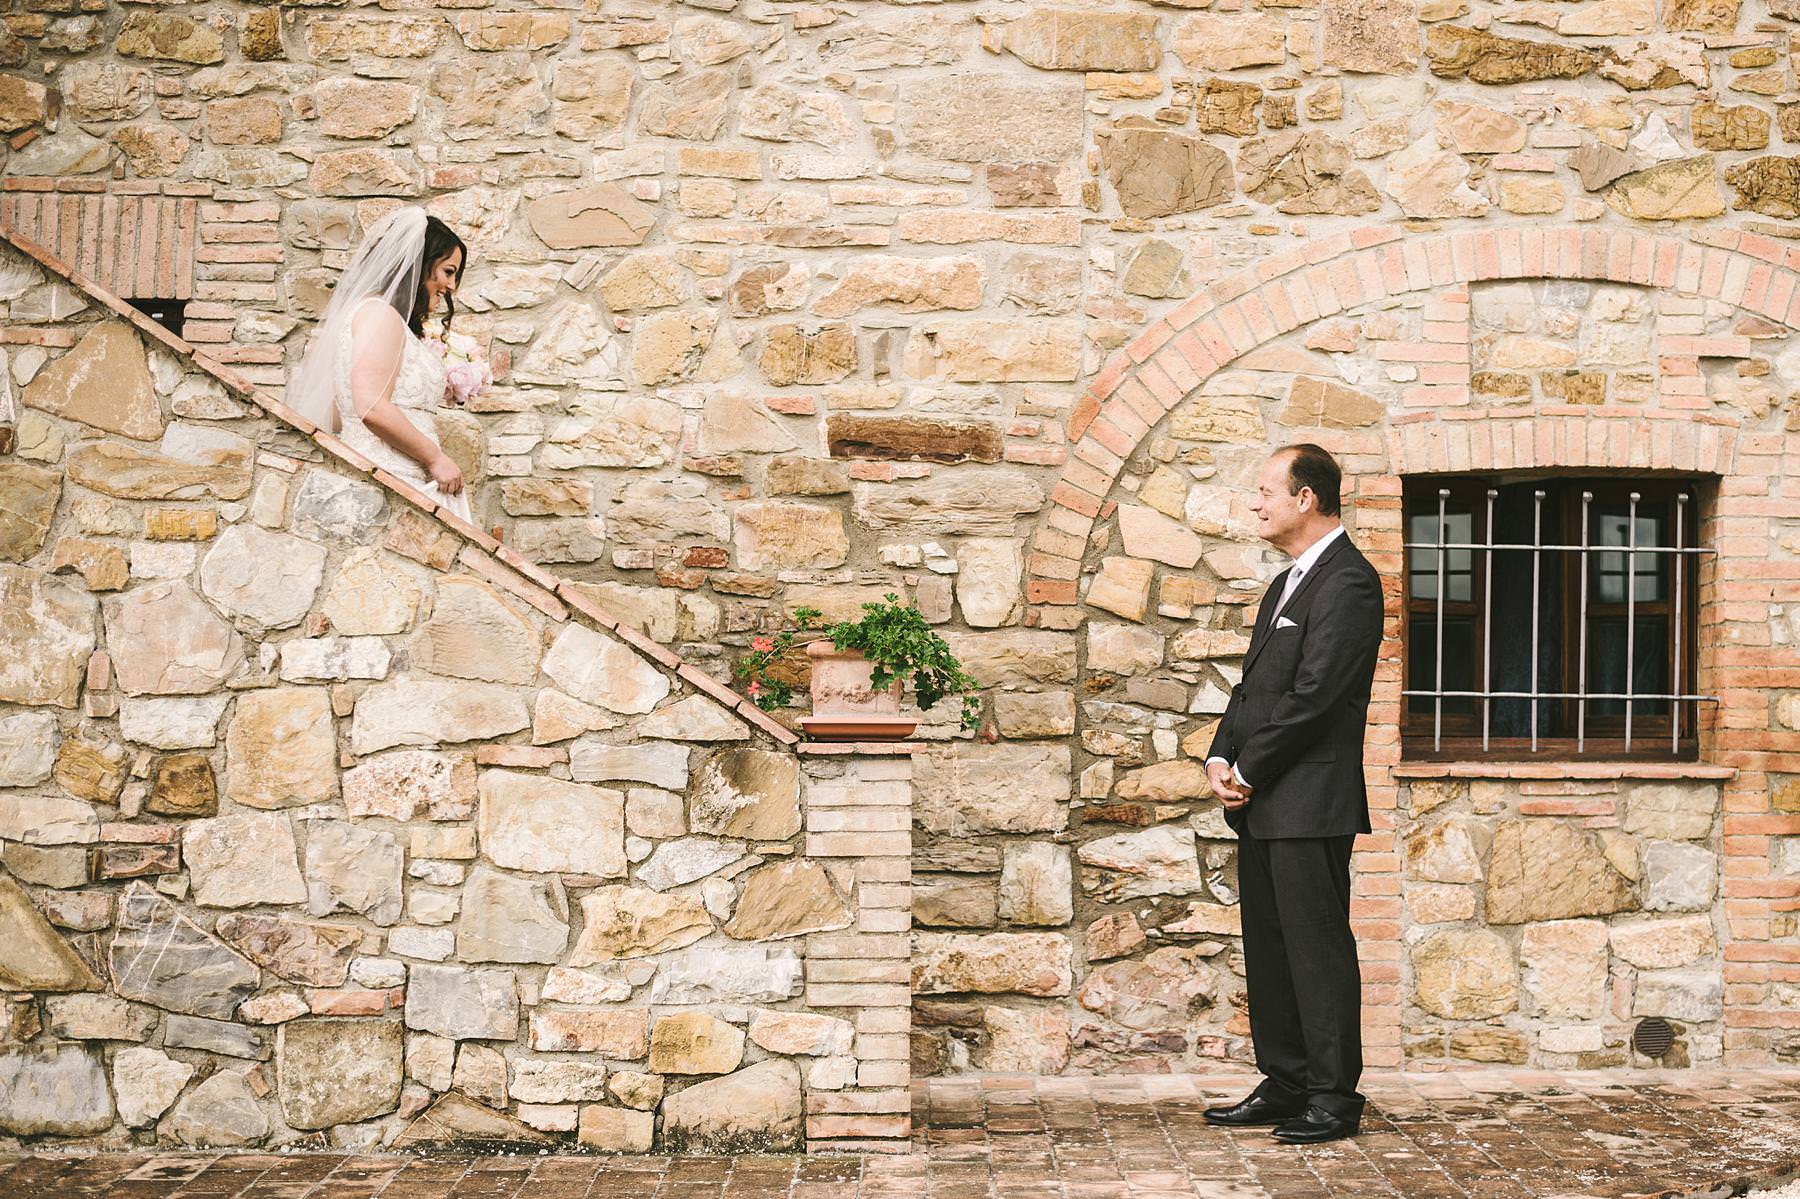 Lovely and emotional symbolic outdoor wedding ceremony at Villa Le Bolli venue near Radicondoli. Bride Hillary sees her father just before to walks down the aisle